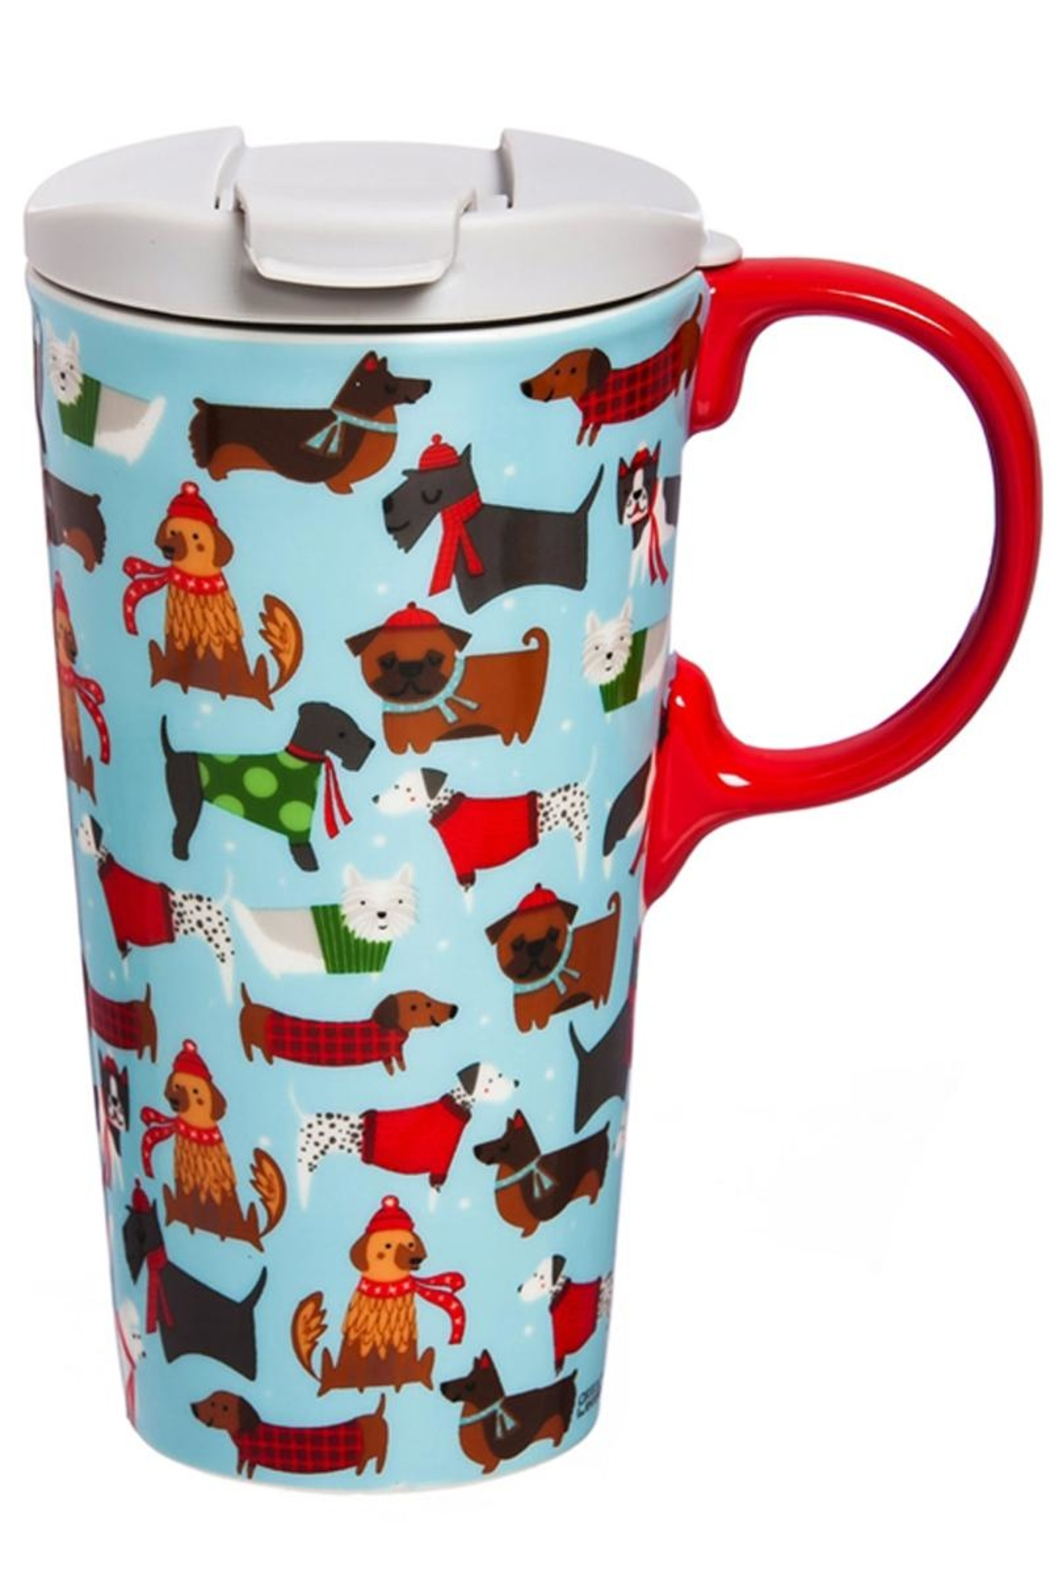 Evergreen Enterprises Perfect Cup Festive-Fido's - Main Image